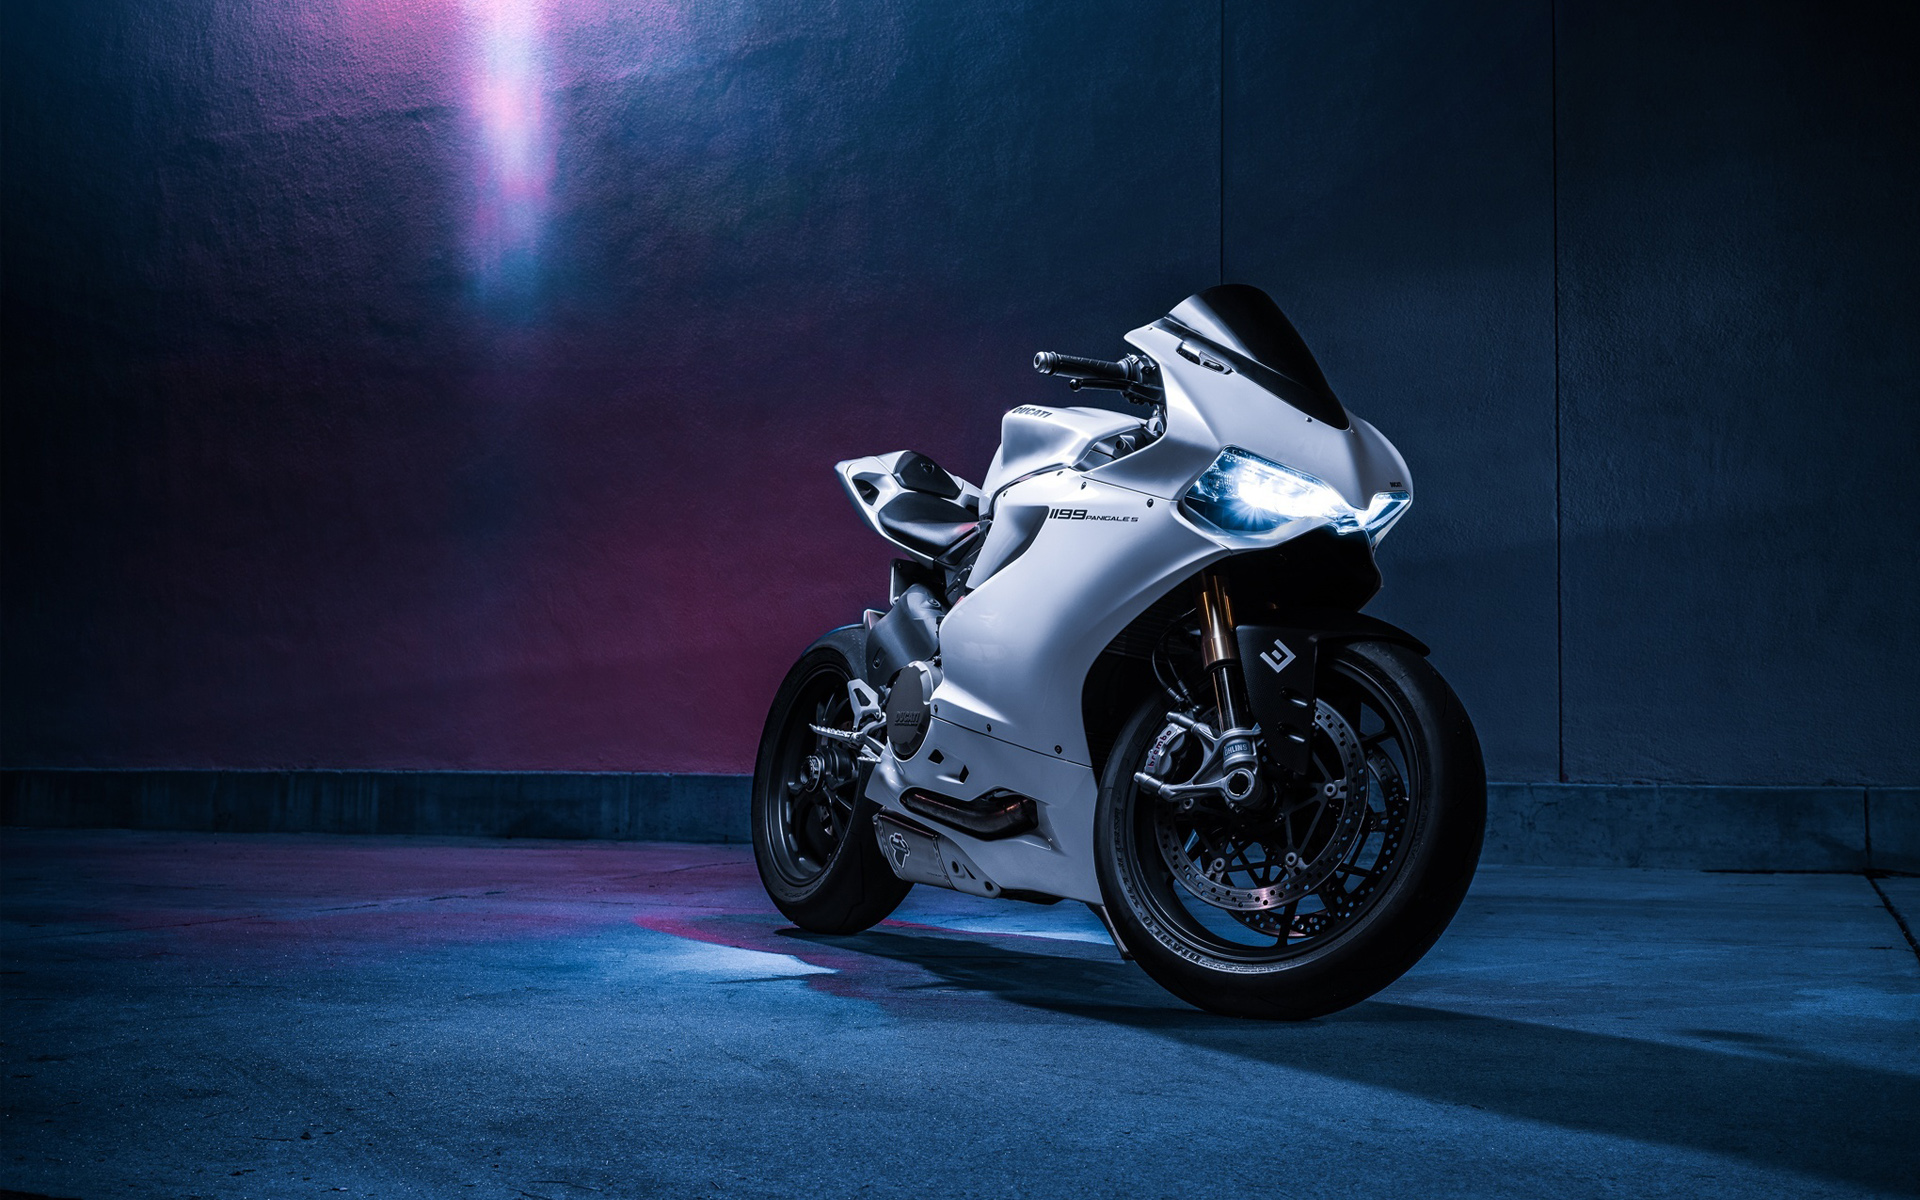 Ducati 1199 Panigale S Wallpapers HD Wallpapers 1920x1200